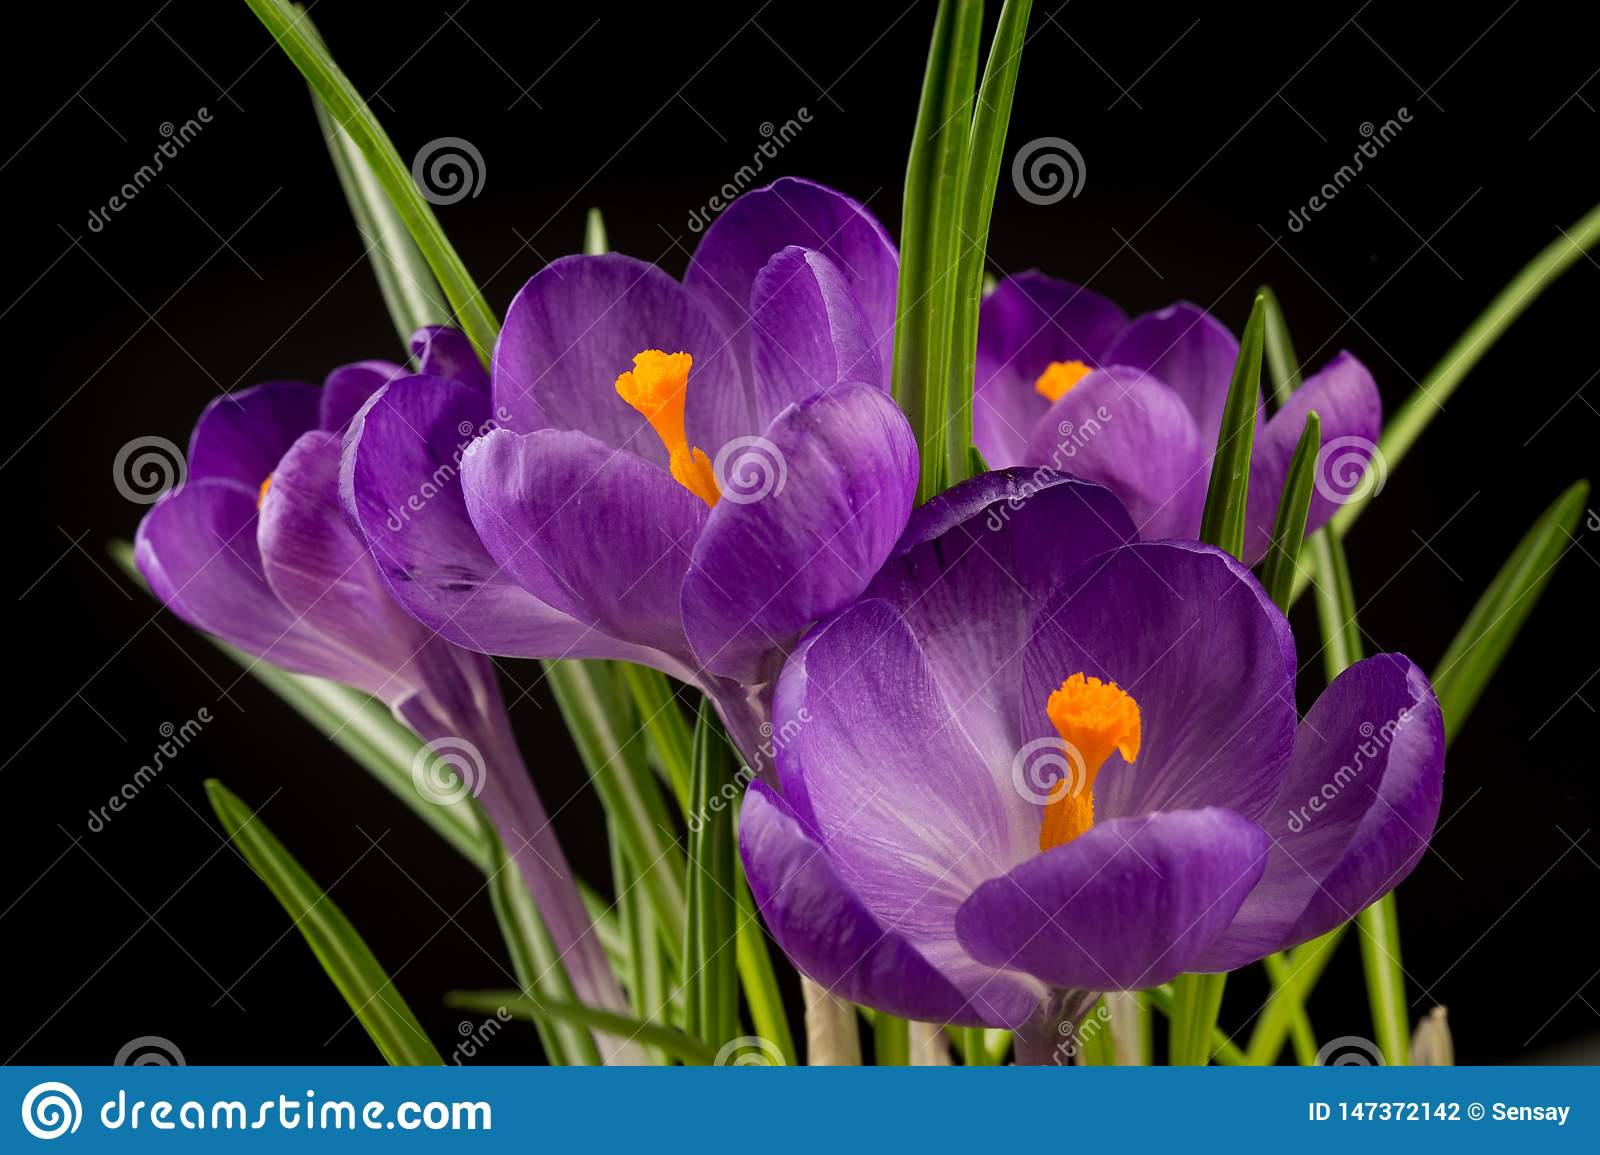 Macro view of a beautiful crocus flower on black. Spring background